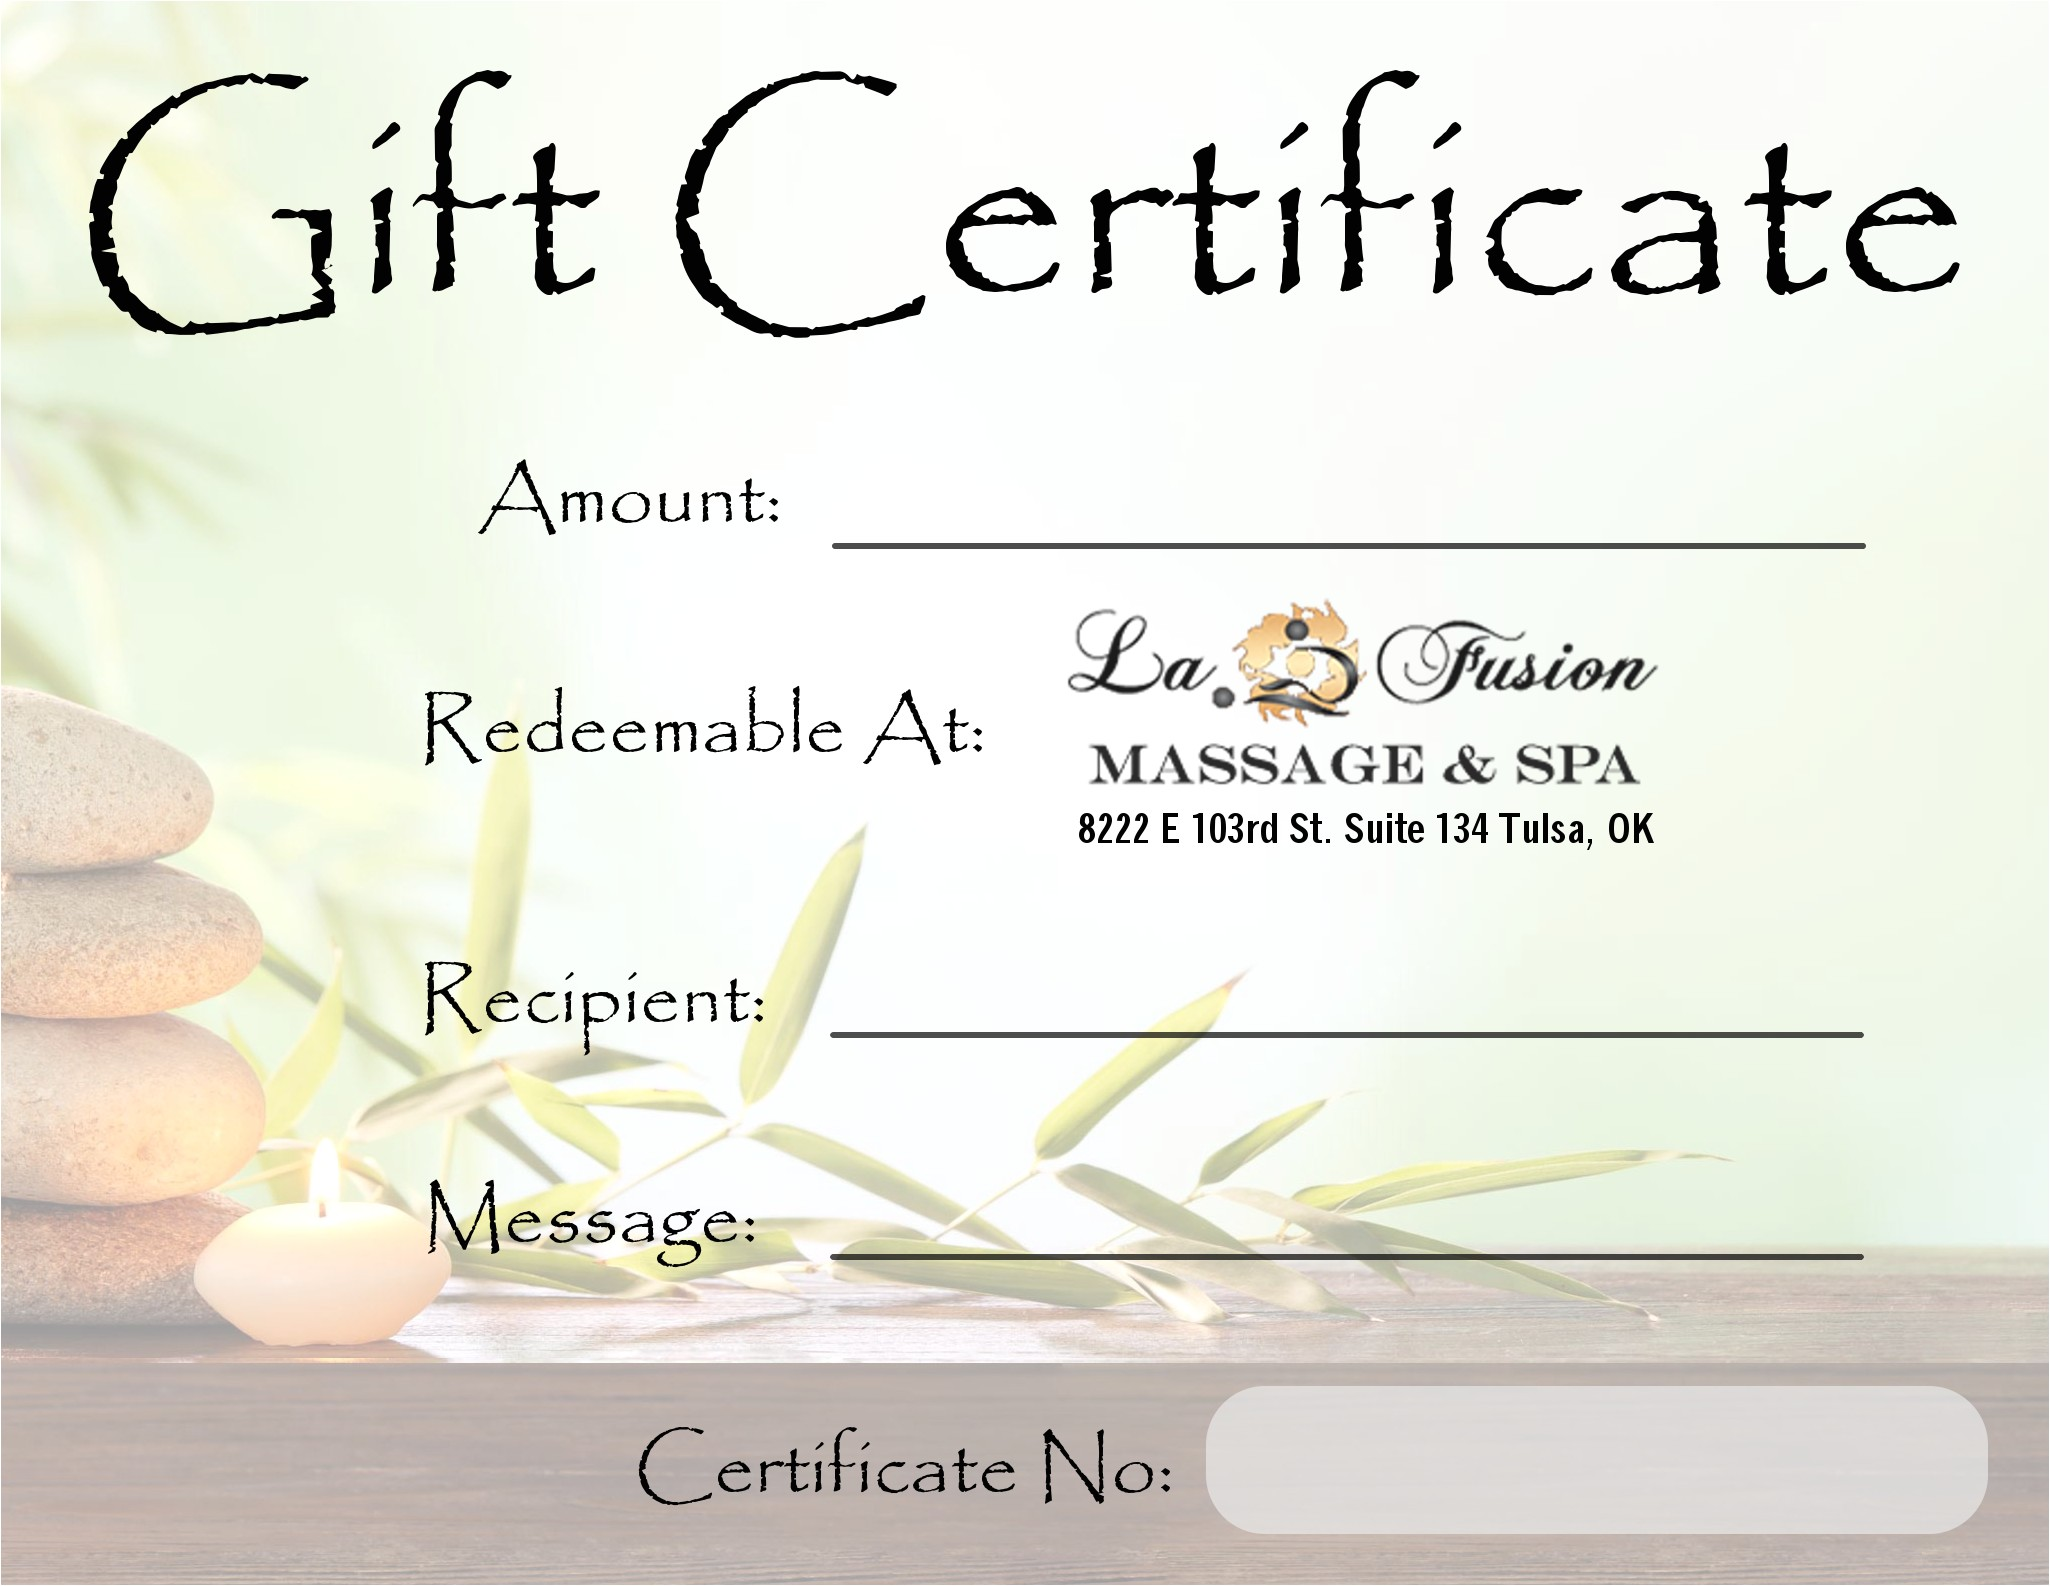 Massage Certificates Templates Free Lafusion Massage Spa Gift Certificate Tulsa Spa Gifts